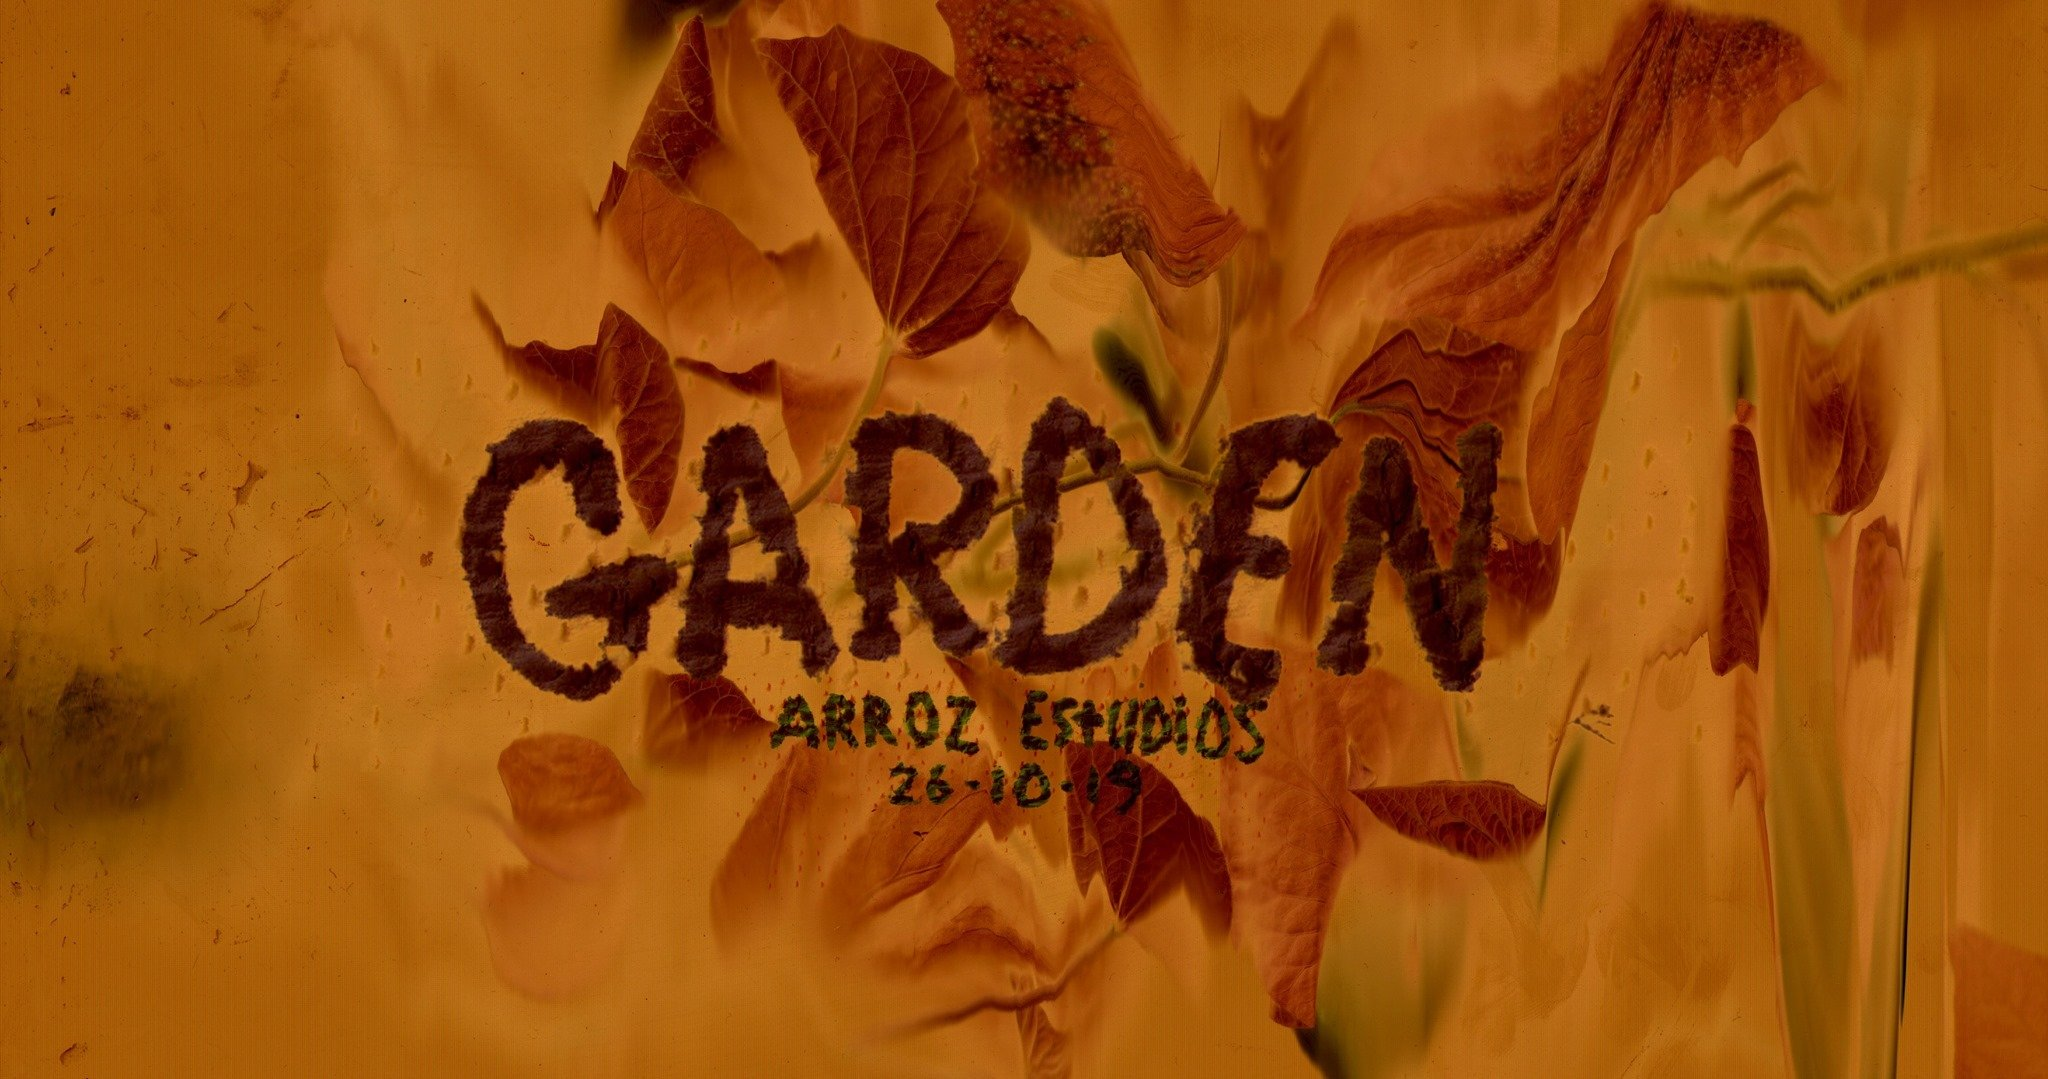 Upcoming Event | Garden of Ghouls: Halloween Special | Arroz Estudios | Oct 26